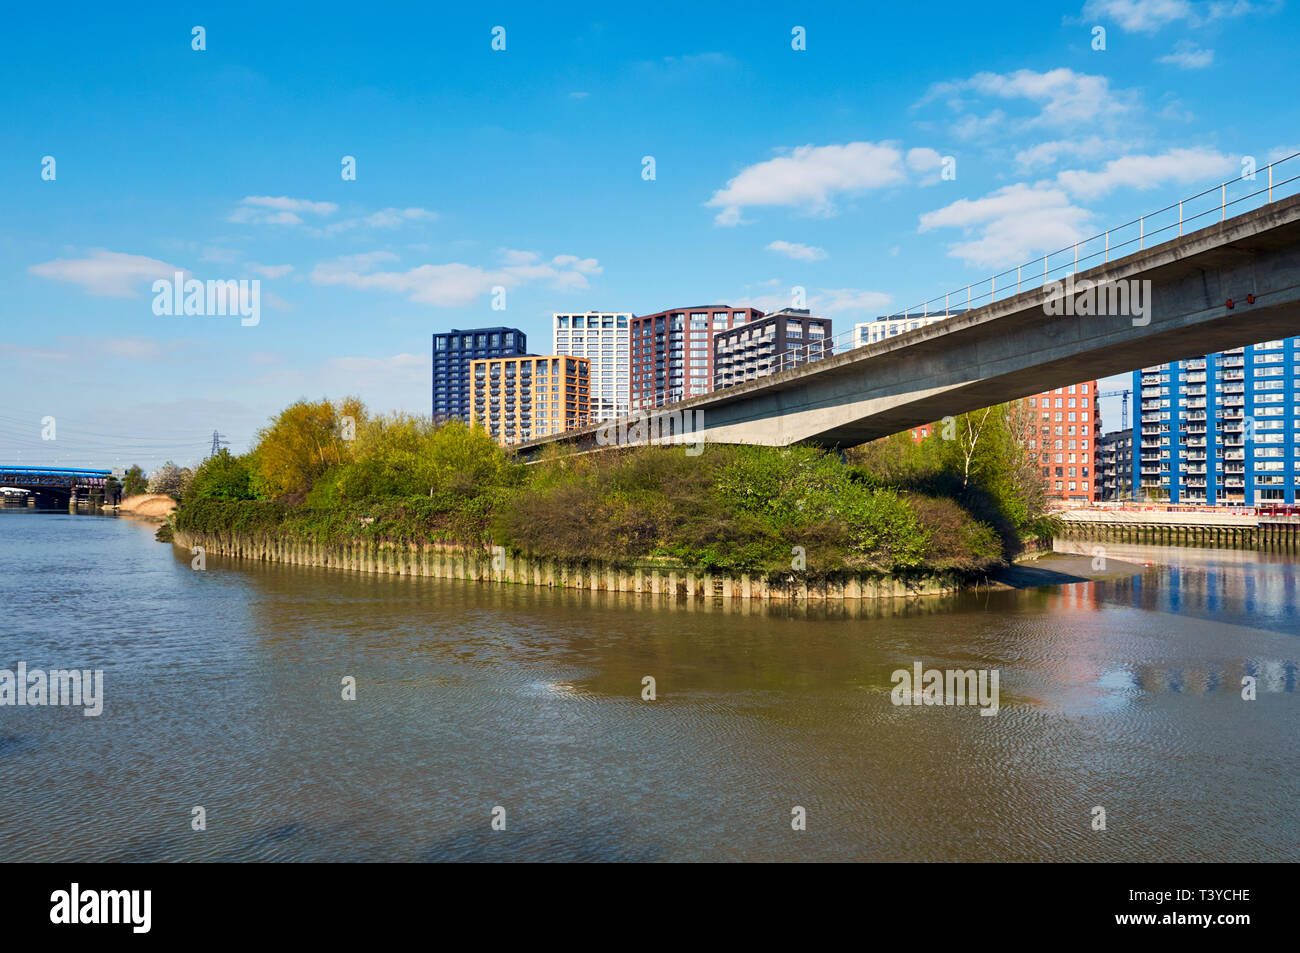 Bow Creek Ecology Park, Poplar, East London UK, with the Docklands Light Railway flyover and new apartments - Stock Image